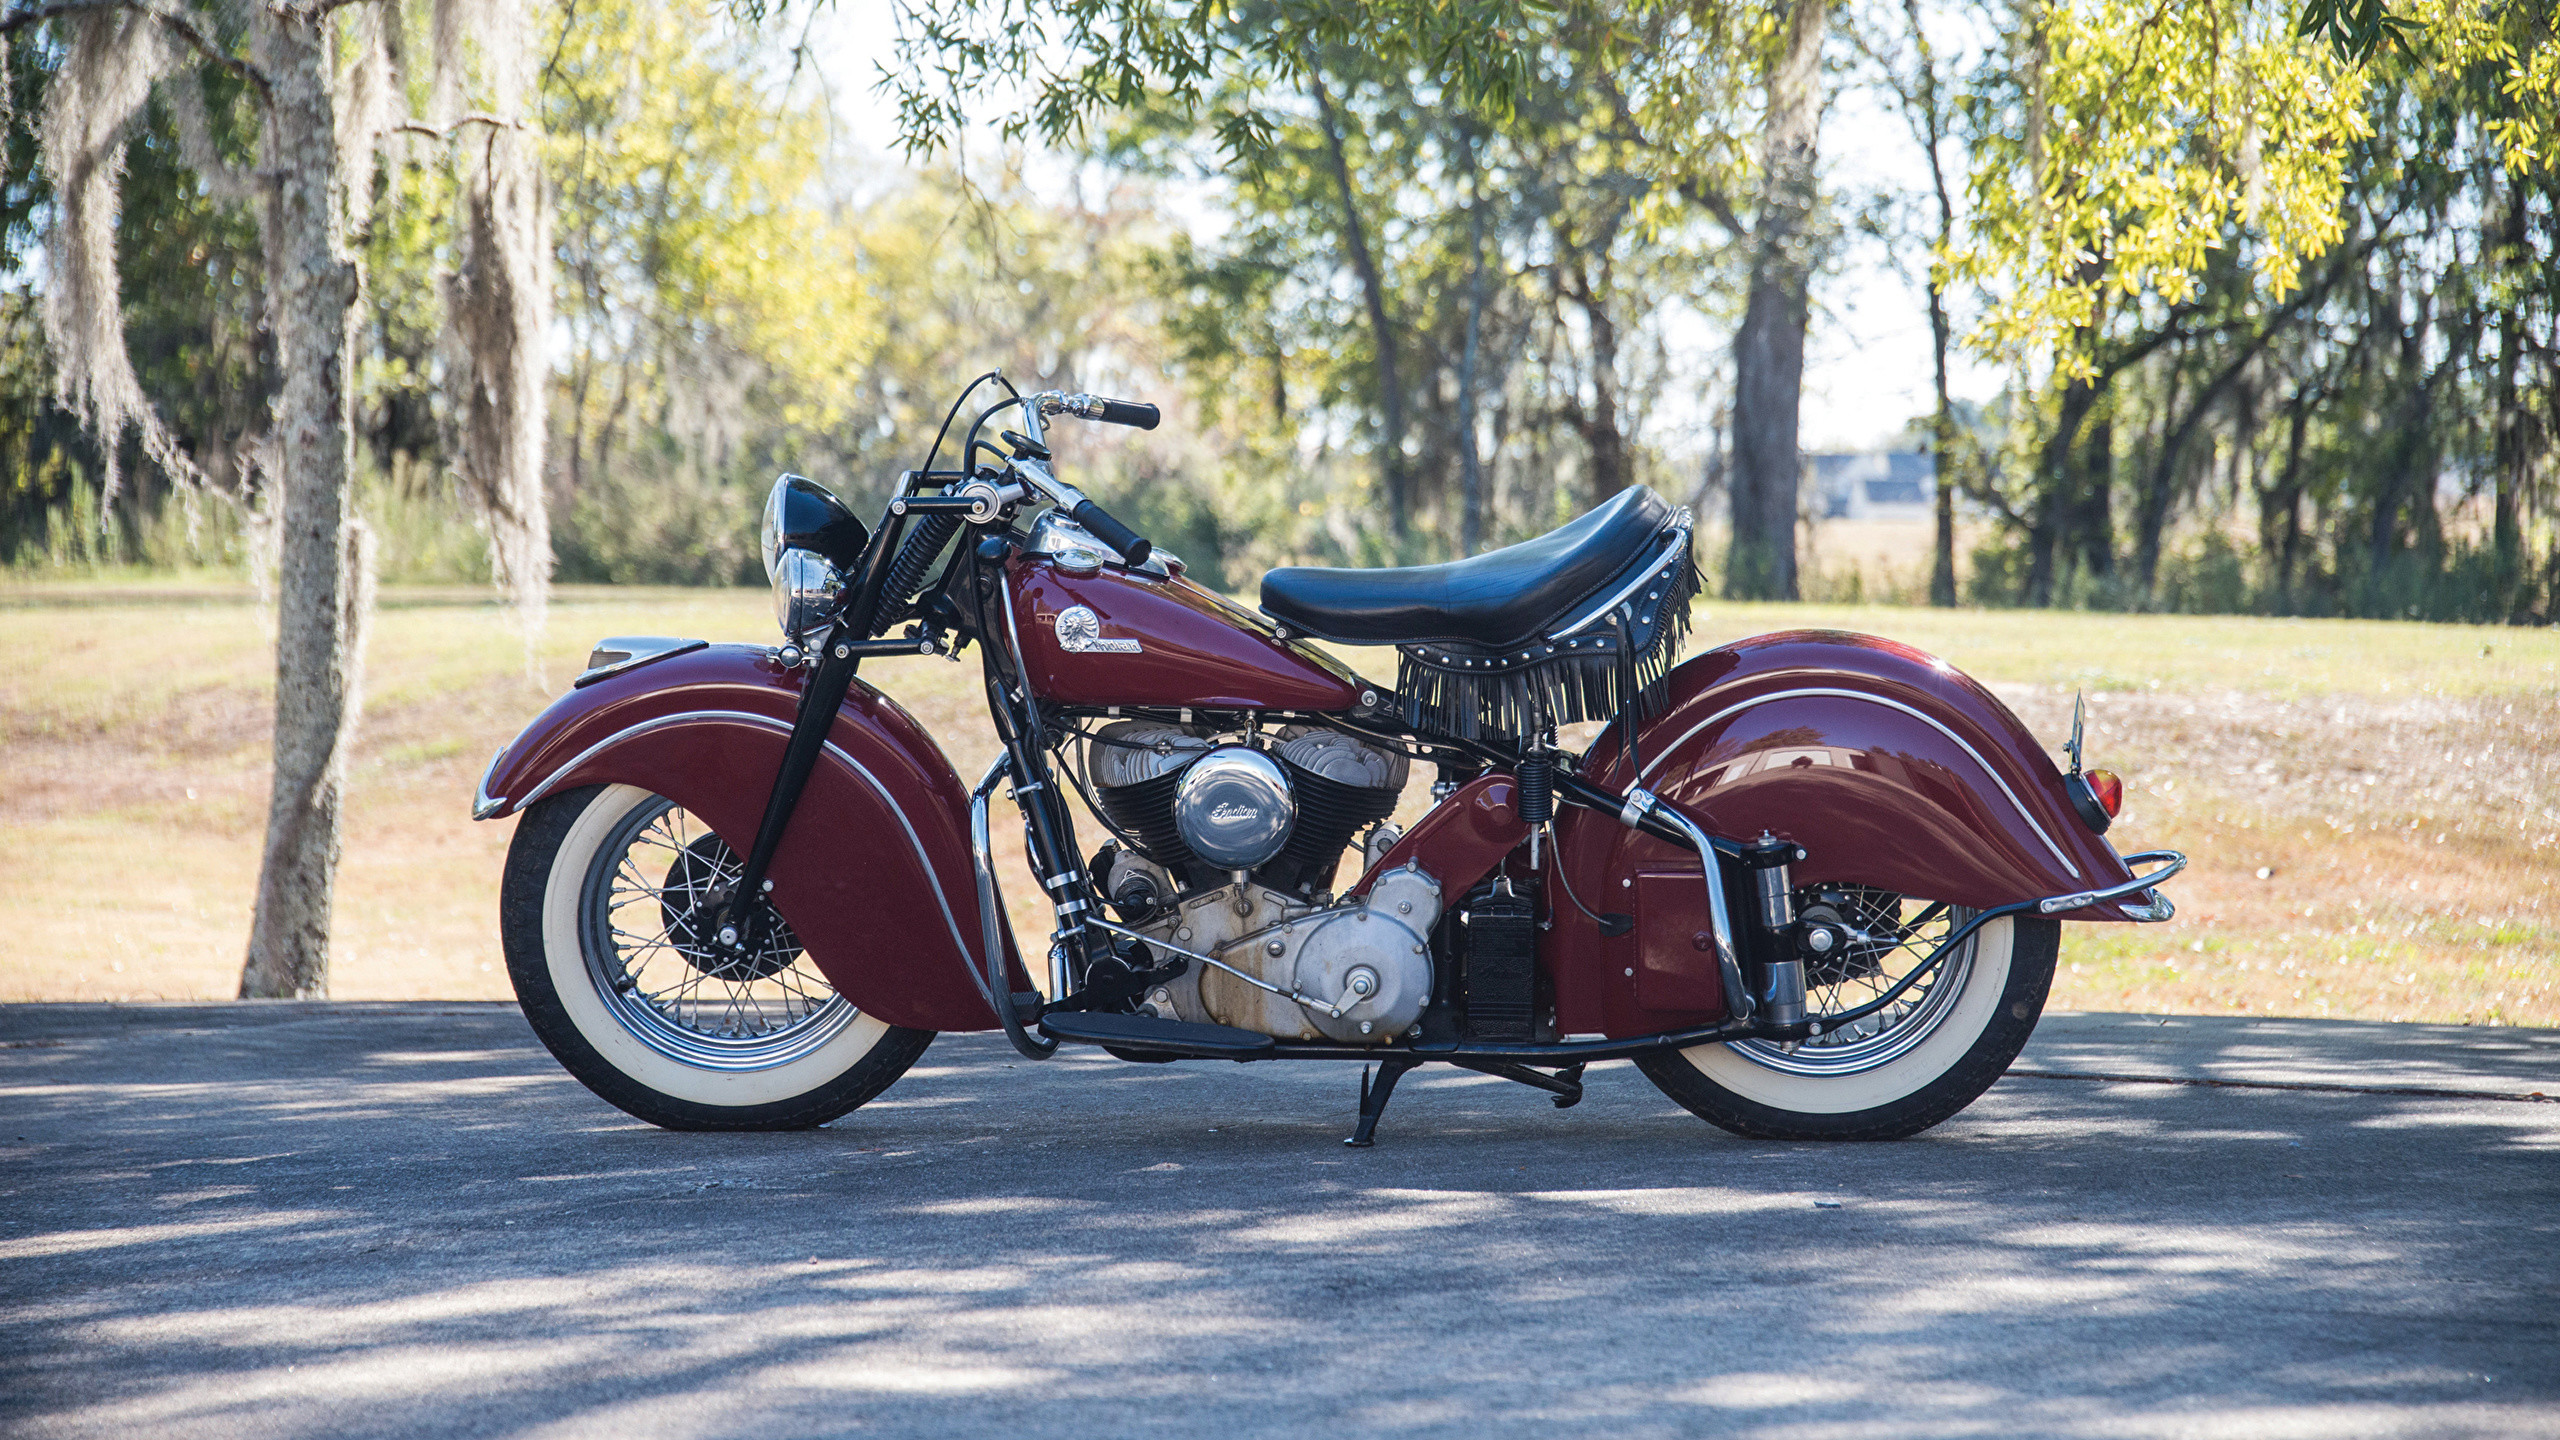 Res: 2560x1440, Wallpaper 1946 Indian Chief Vintage Motorcycles Side  Retro antique